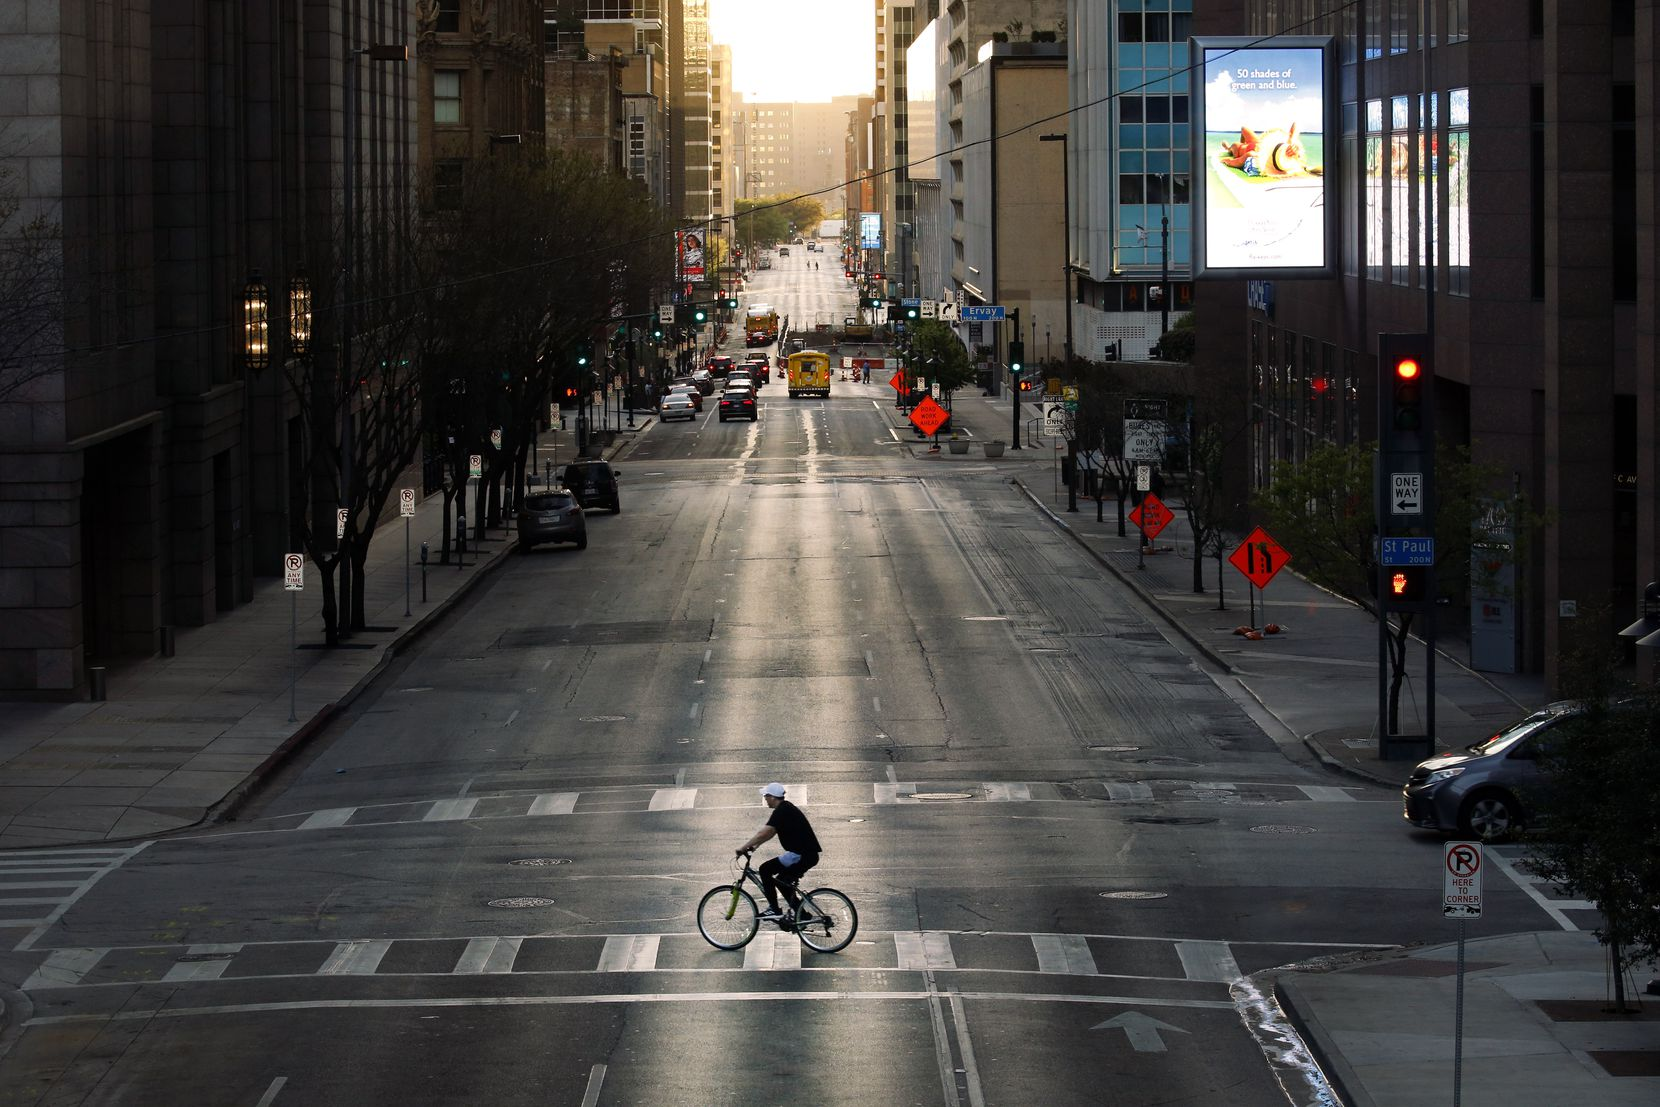 With very few cars on the street, a cyclist peddles across Elm St. in downtown Dallas, Wednesday evening, March 25, 2020.  There's less traffic than normal after Judge Clay Jenkins ordered a shelter-in-place due to coronavirus.  (Tom Fox/The Dallas Morning News)